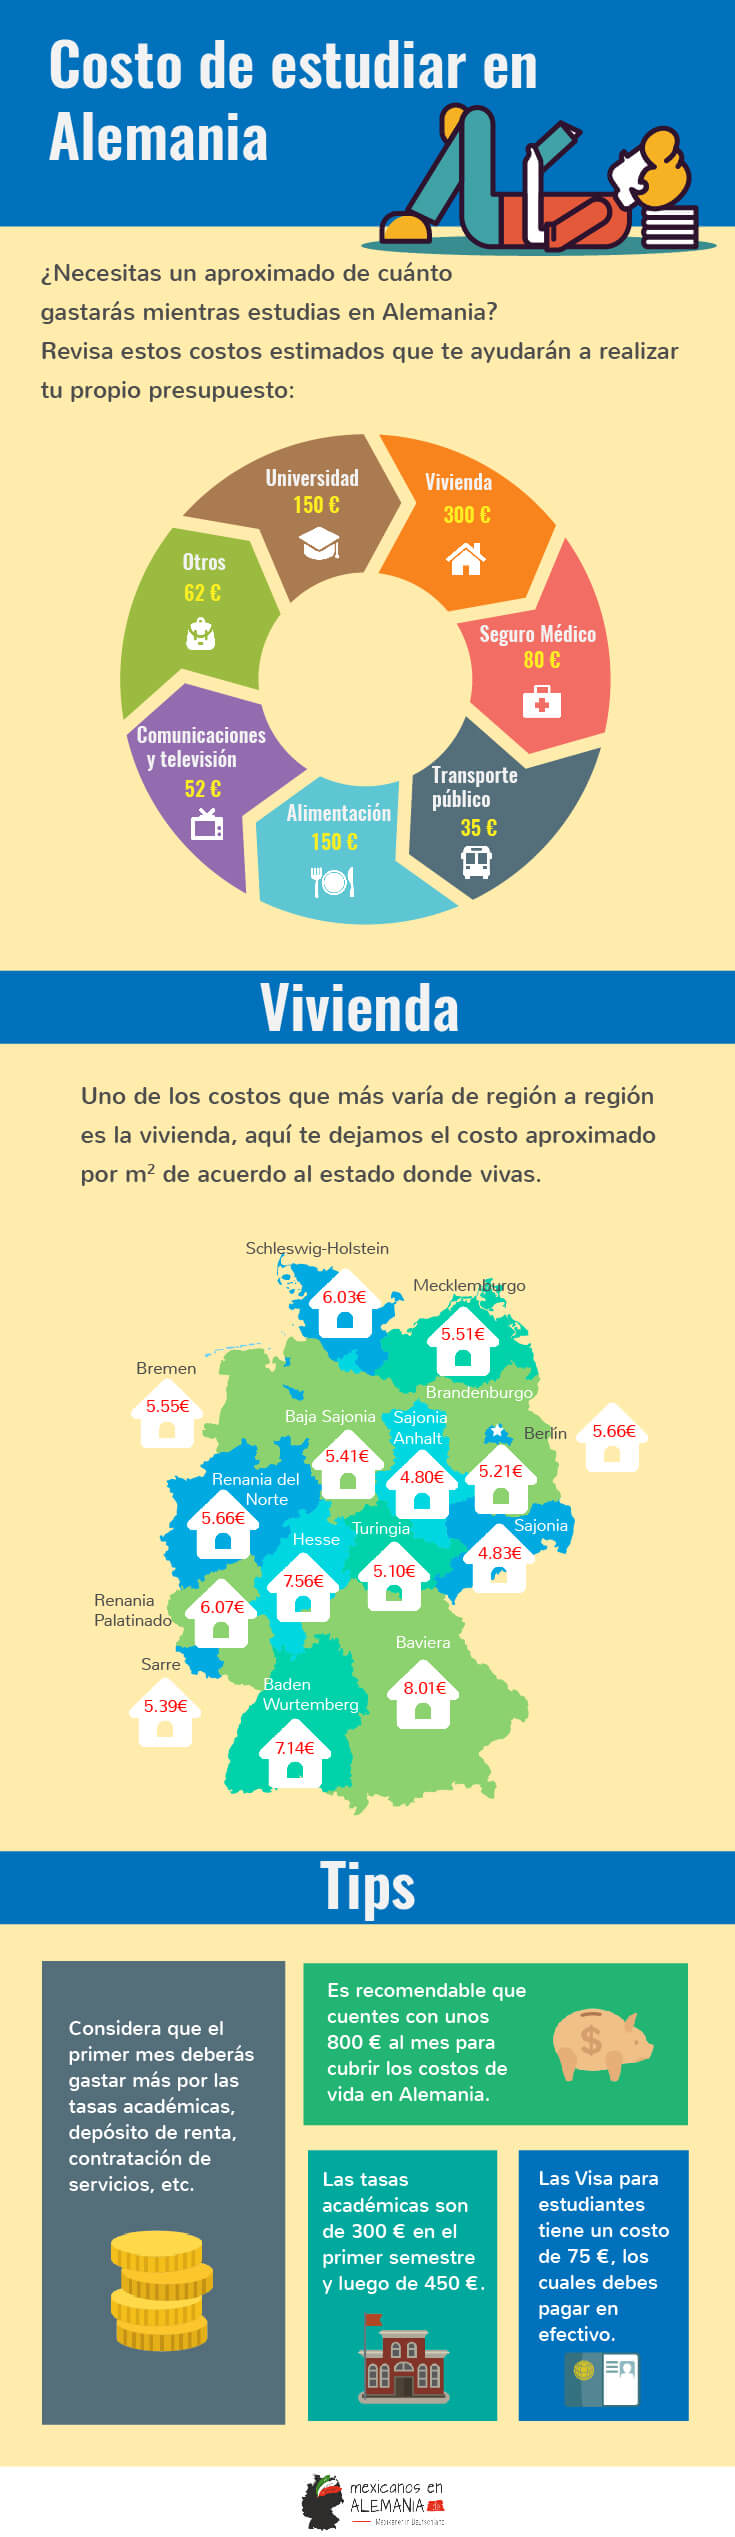 costosestudiarenAlemania-infografia